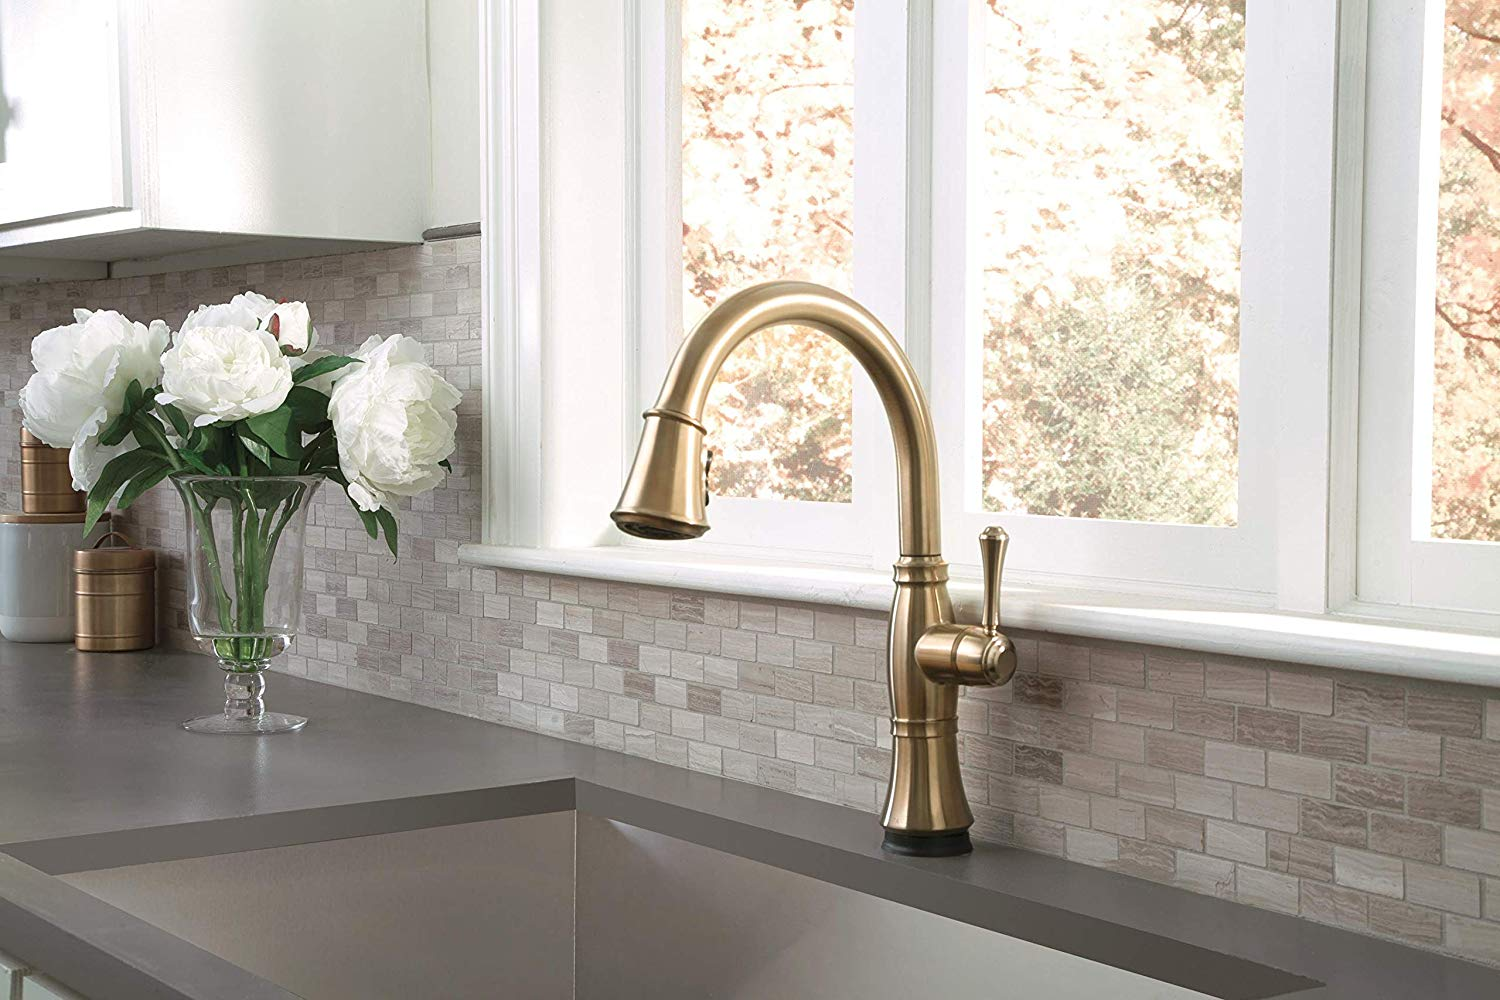 7 Best Delta Touch On Kitchen Faucet Reviews of 2019